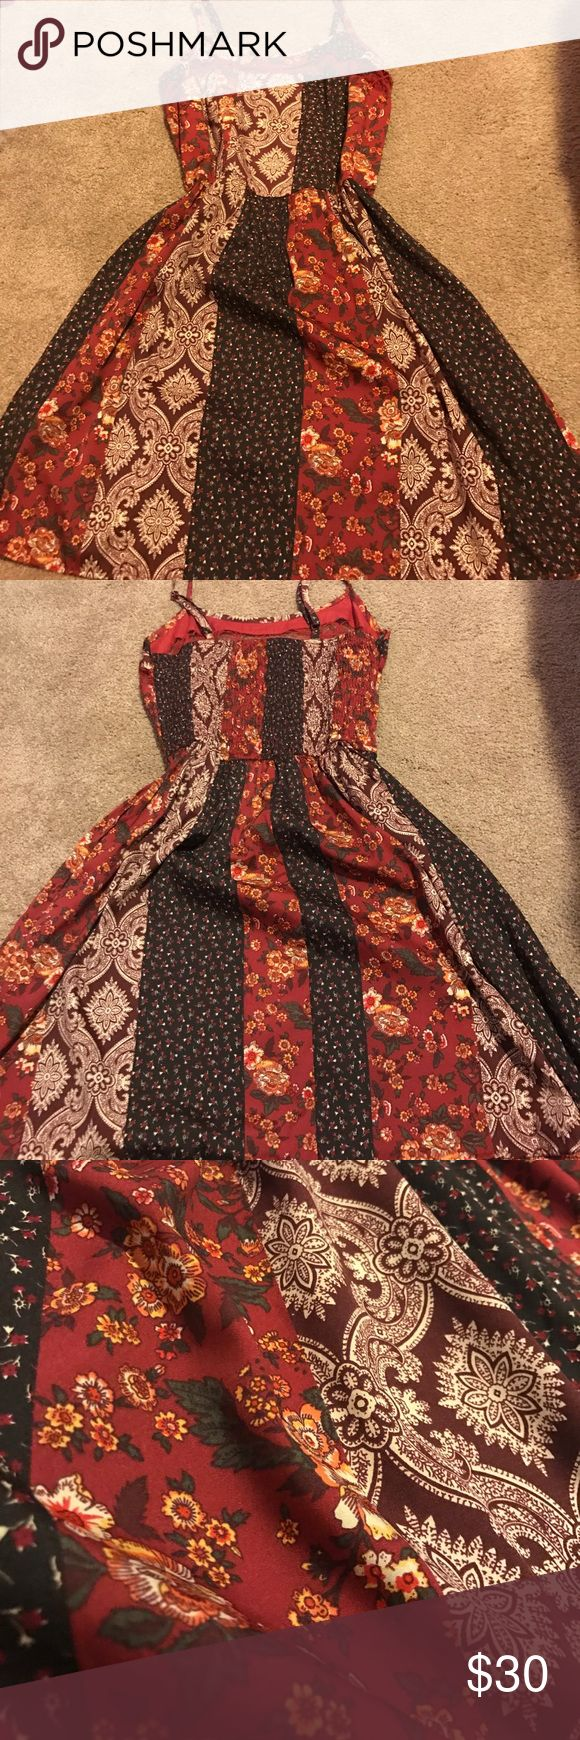 Maroon and black patterned sundress American Rag short sundress with multiple patterns. Lace top strip. American Rag Dresses Mini